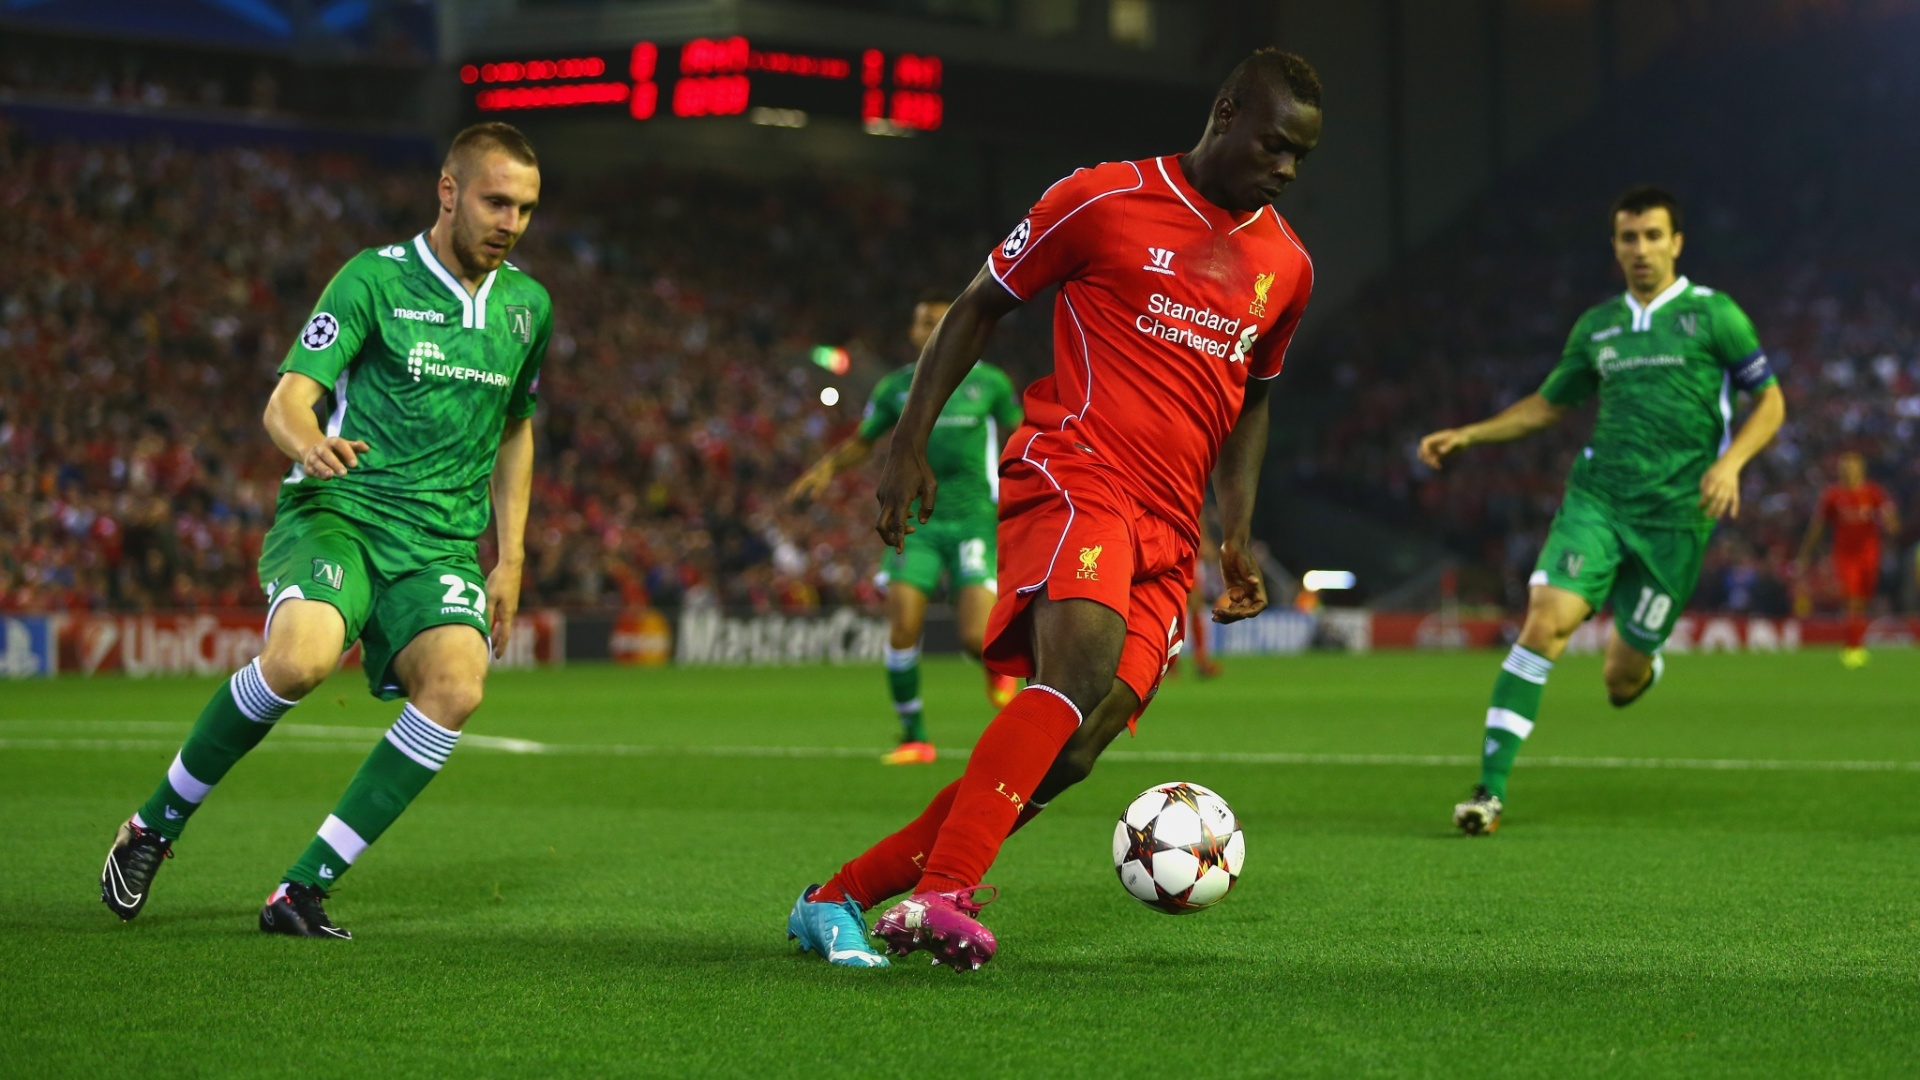 Balotelli domina bola em confronto do Liverpool com o Ludogorets